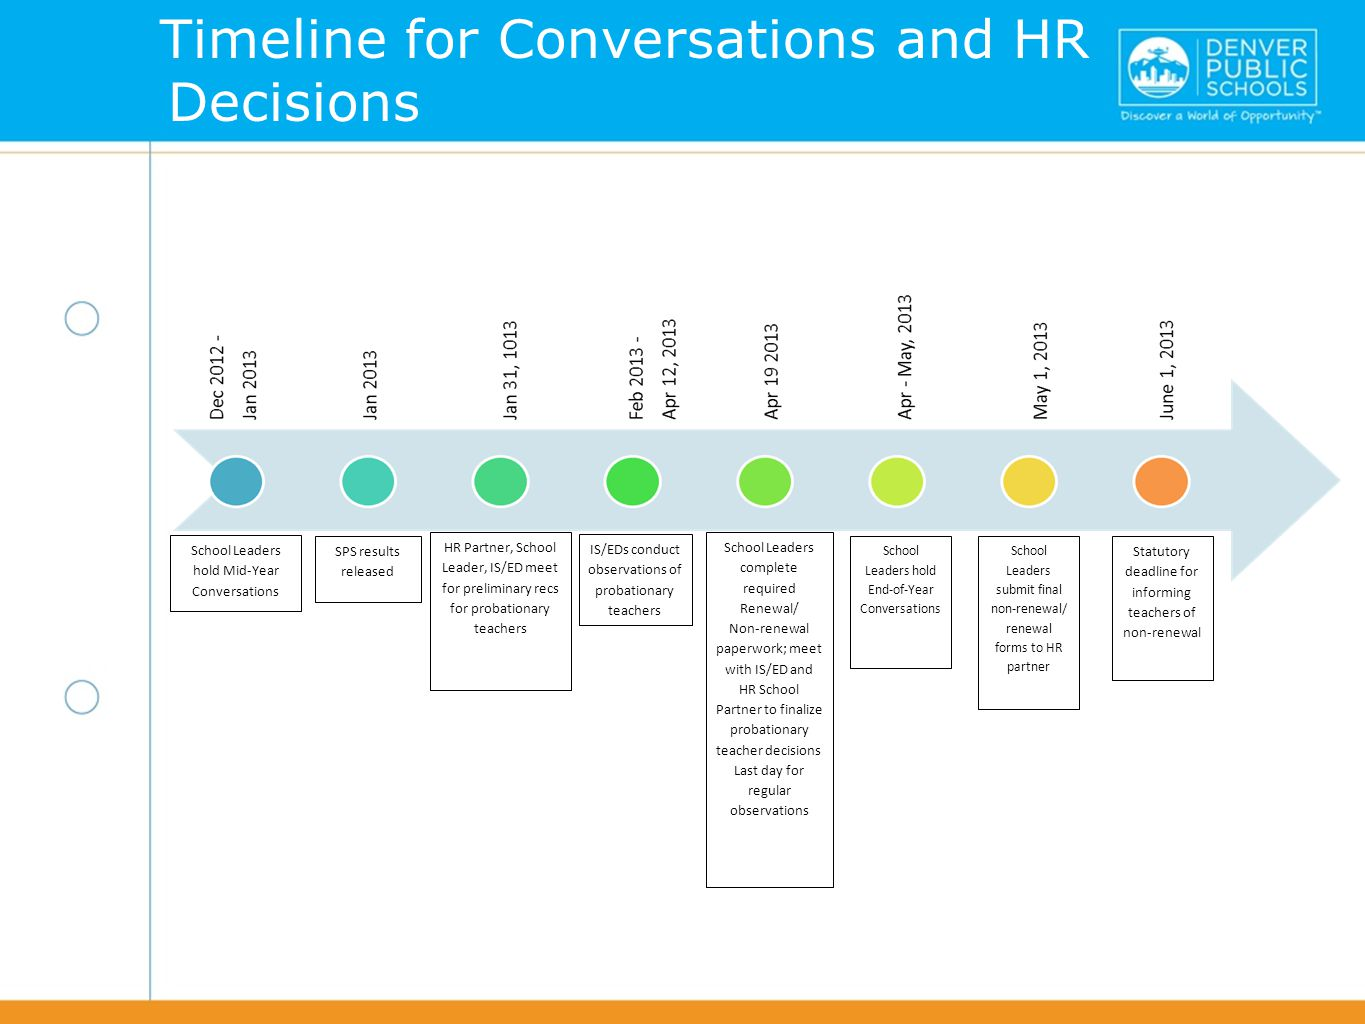 Timeline for Conversations and HR Decisions School Leaders hold Mid-Year Conversations HR Partner, School Leader, IS/ED meet for preliminary recs for